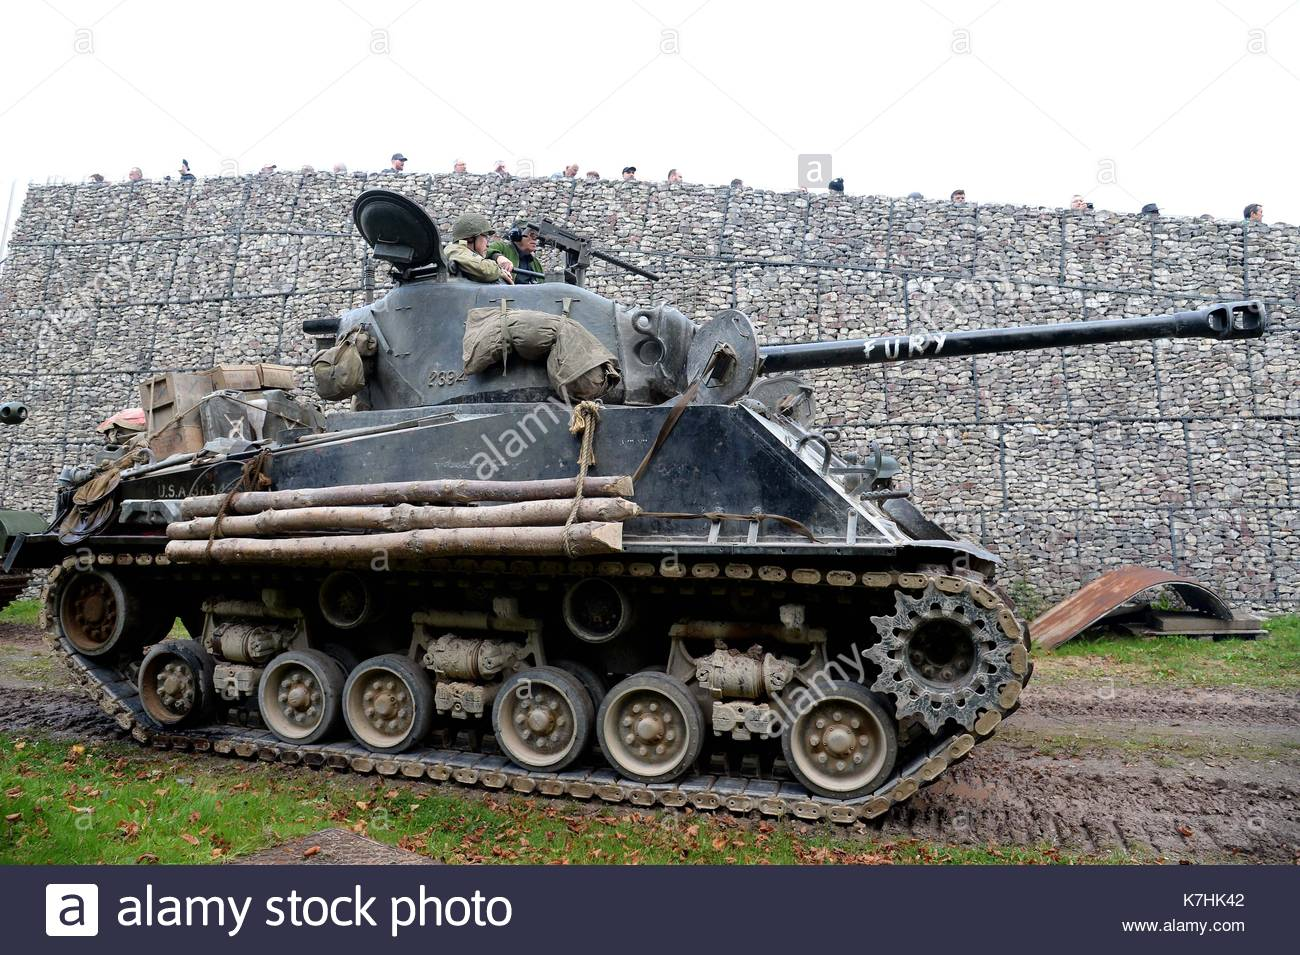 Click image for larger version  Name:demonstration-at-bovington-tank-museum-of-the-m4-sherman-from-the-K7HK42.jpg Views:47 Size:252.6 KB ID:2254705